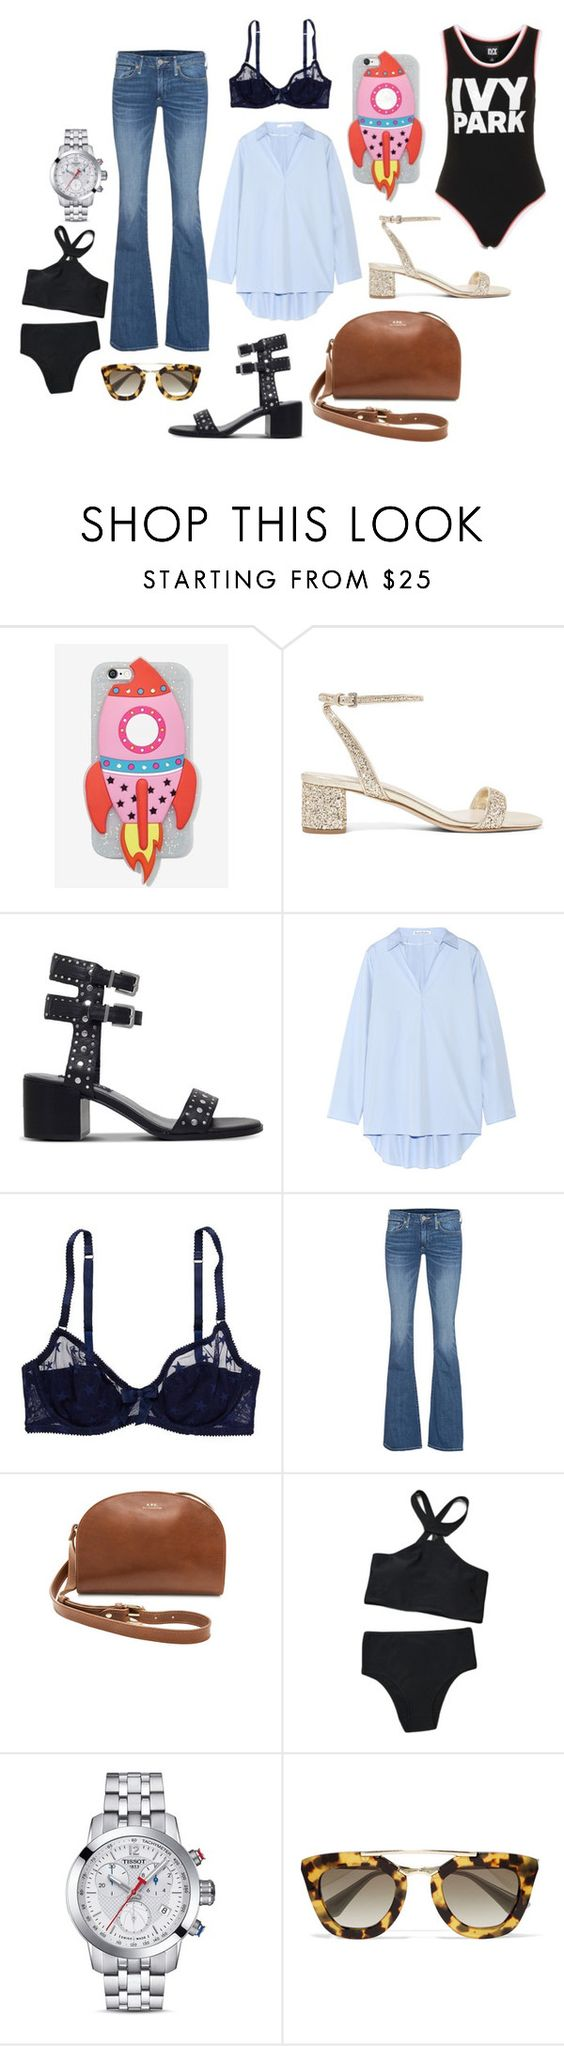 """May"" by malou-malou ❤ liked on Polyvore featuring Skinnydip, Miu Miu, Senso, Acne Studios, American Eagle Outfitters, True Religion, A.P.C., Tissot, Prada and Ivy Park"